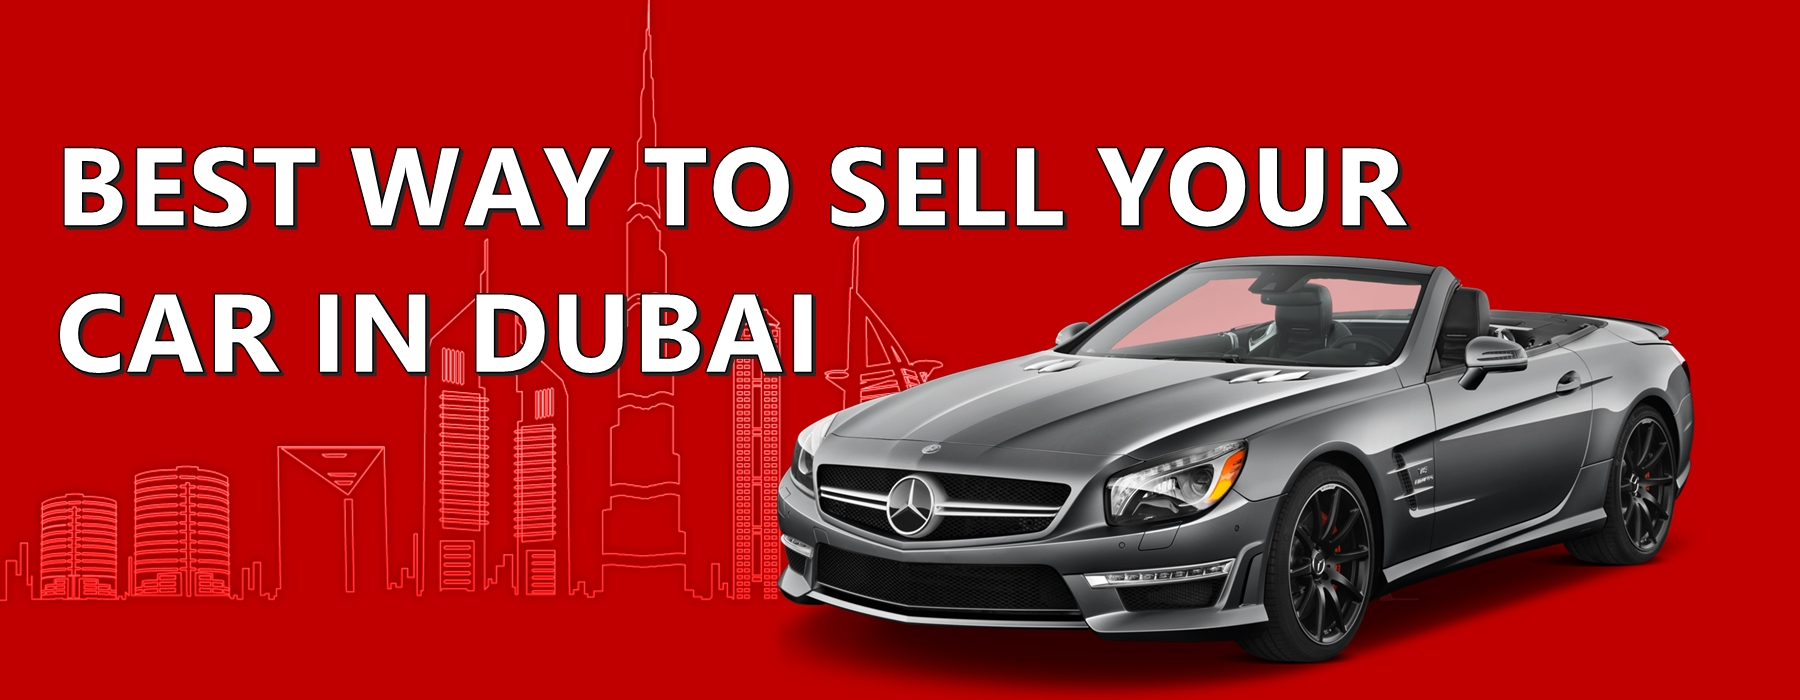 Sell Car Online >> How To Sell Car In Dubai